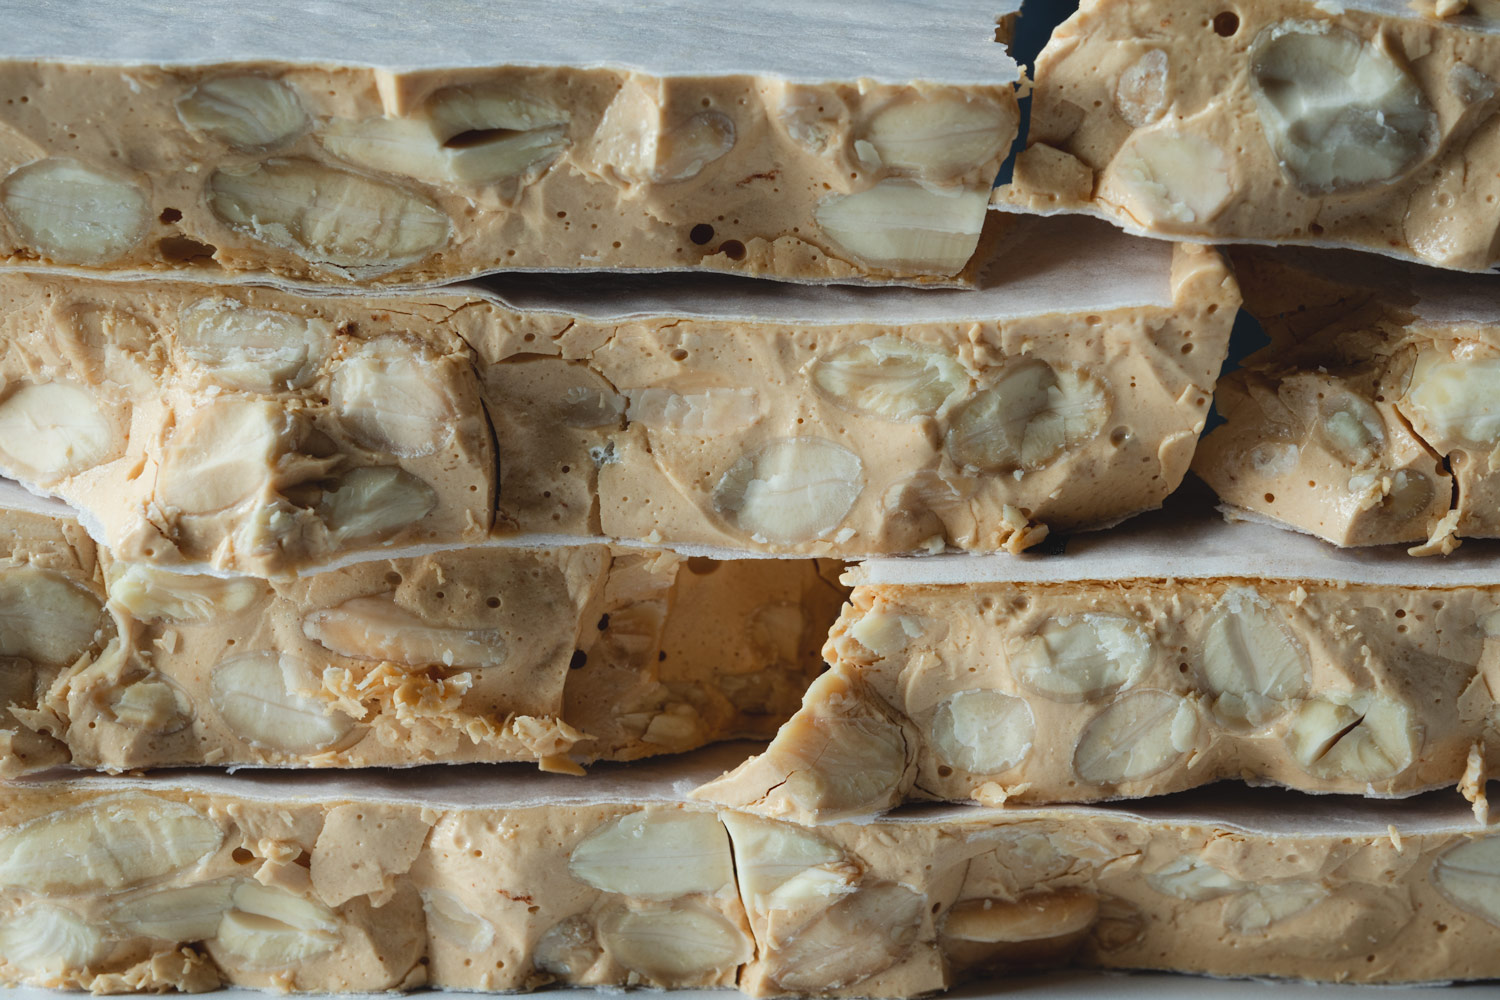 Turron de alicante, hard Spanish almond nougat